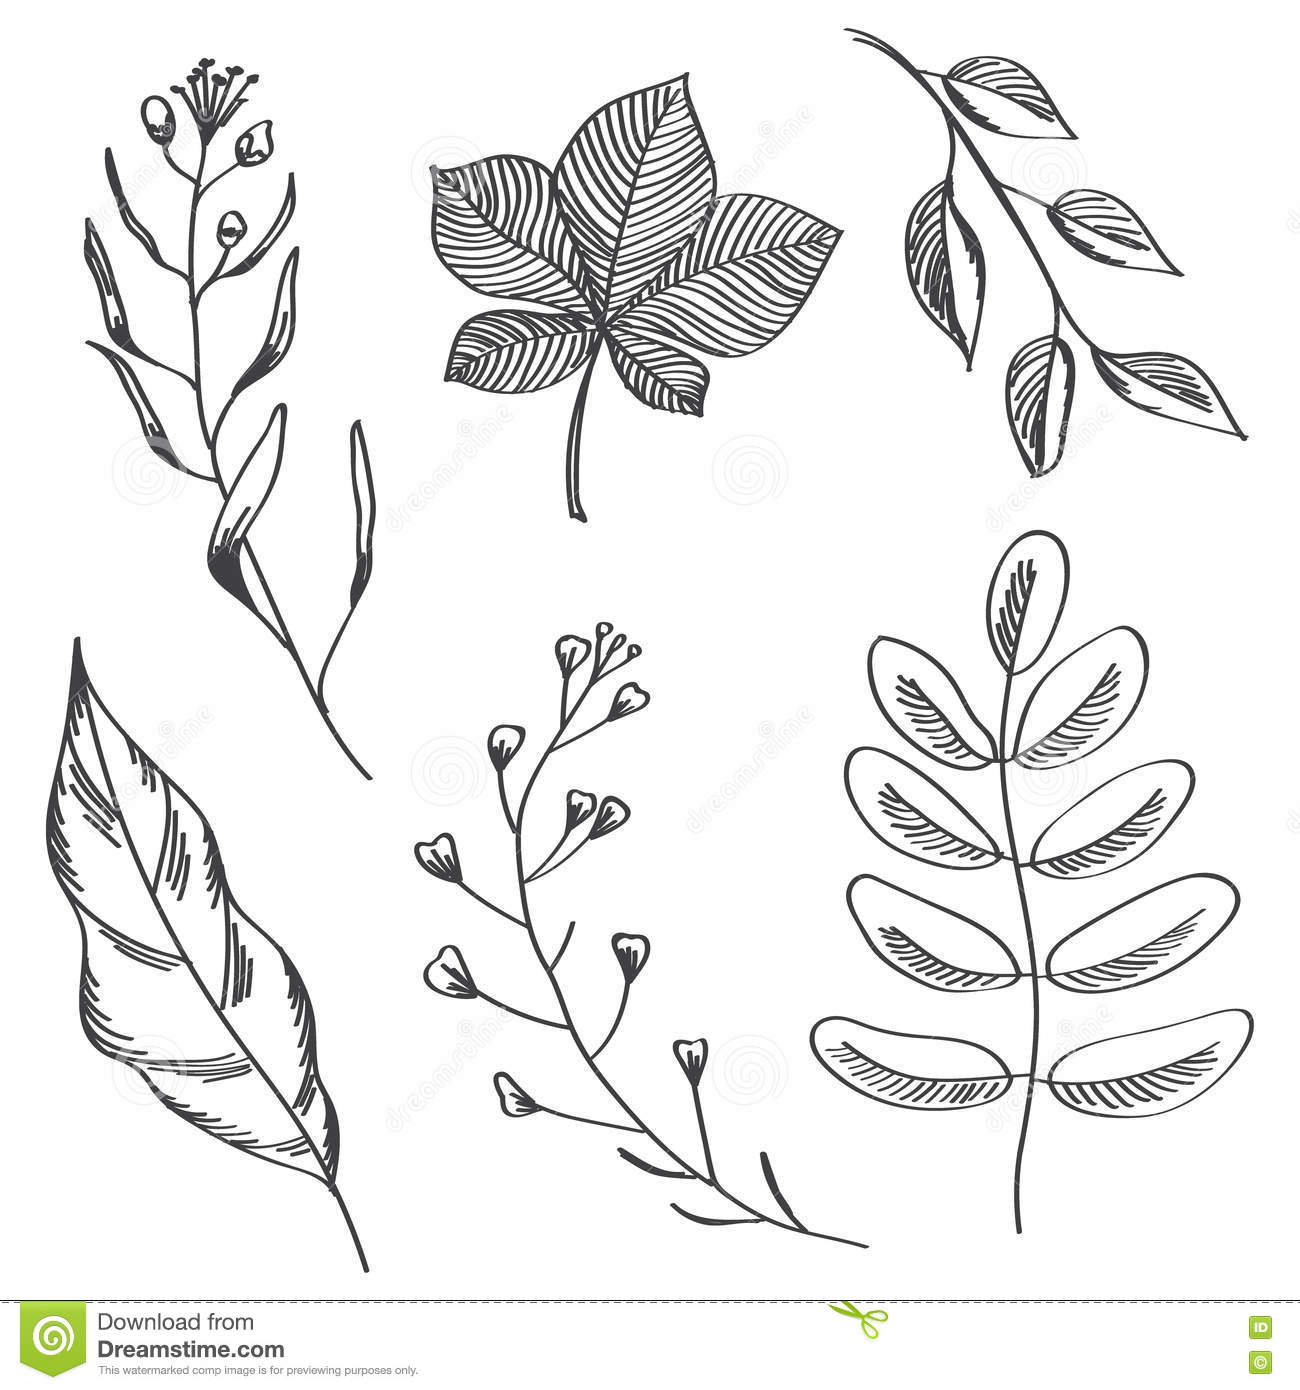 Simple Leaves And Branches Hand Drawn Sketch Stock